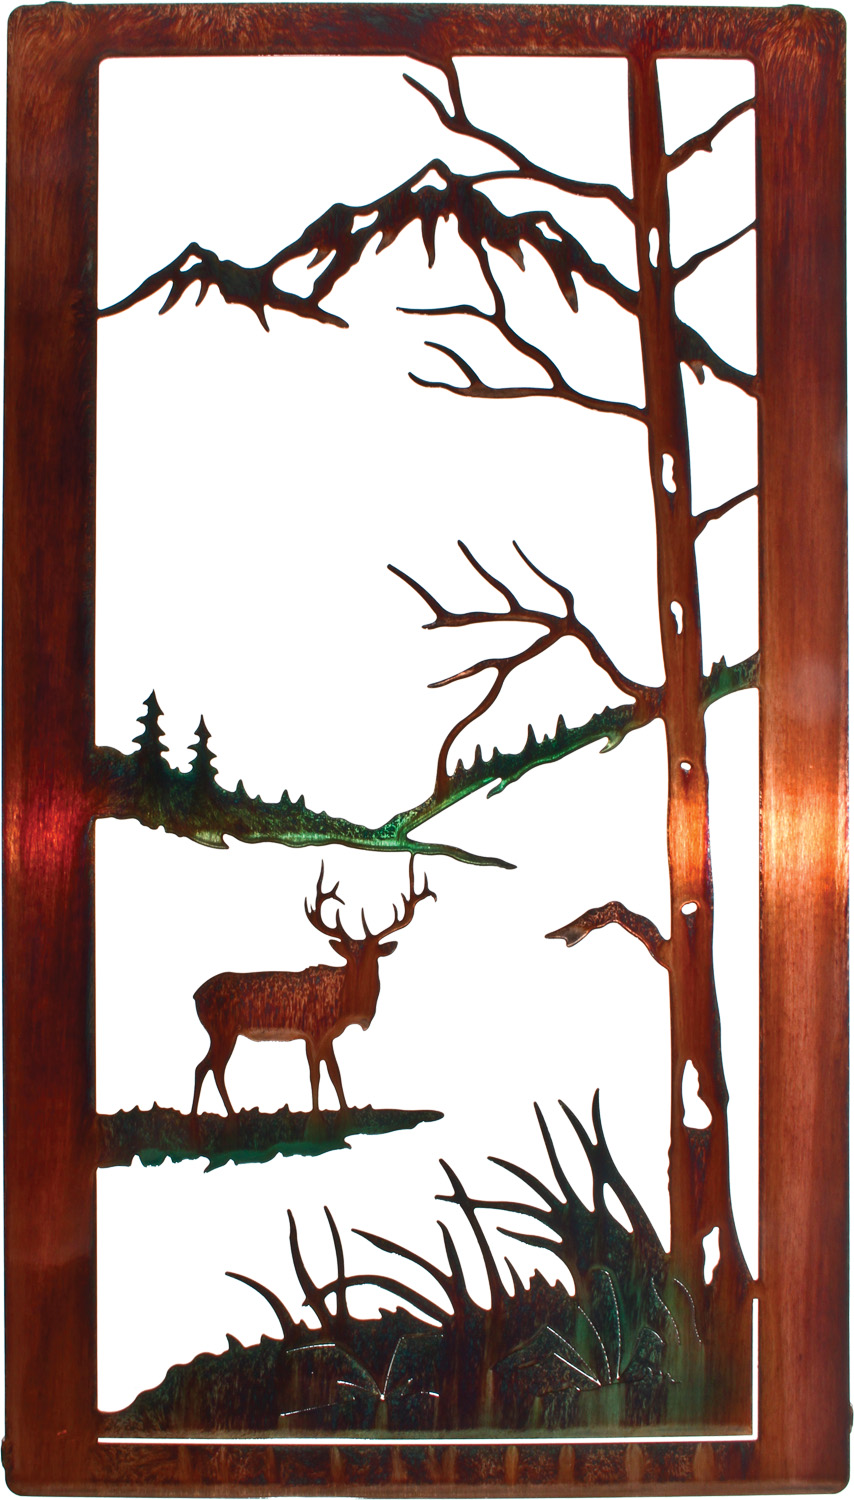 Nature Wildlife Elk Window Frame Metal Wall Art Hanging By Neil Rose In Color Wash Only 20 H X 11 1 4 W